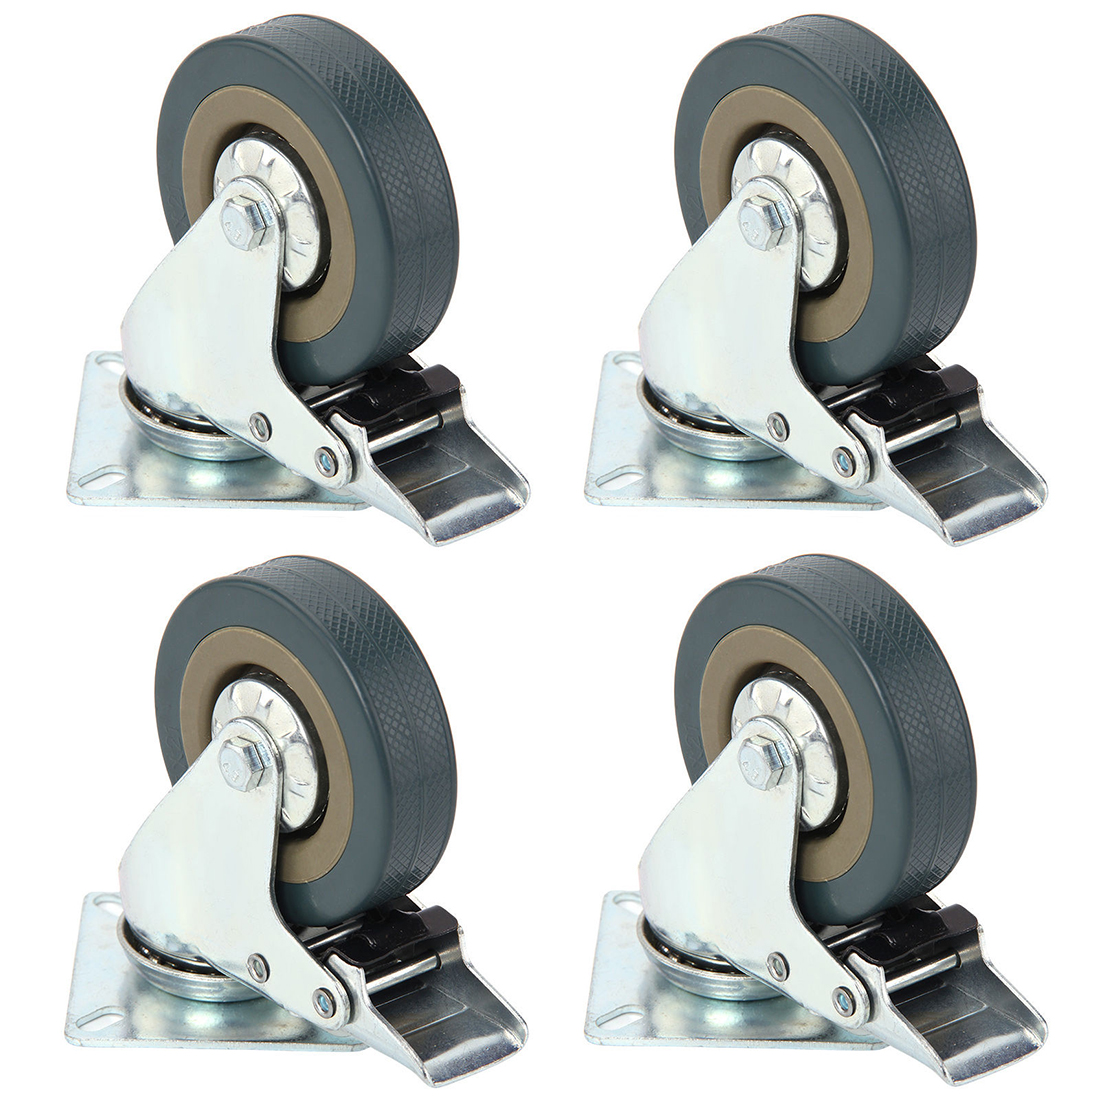 Set of Heavy Duty 75x21mm Rubber Swivel Castor Wheels Trolley Caster Brake 50KGModel:4 with brake ys 138no nc ansi standard heavy duty electric strike size 124 x 32 x 33 mm